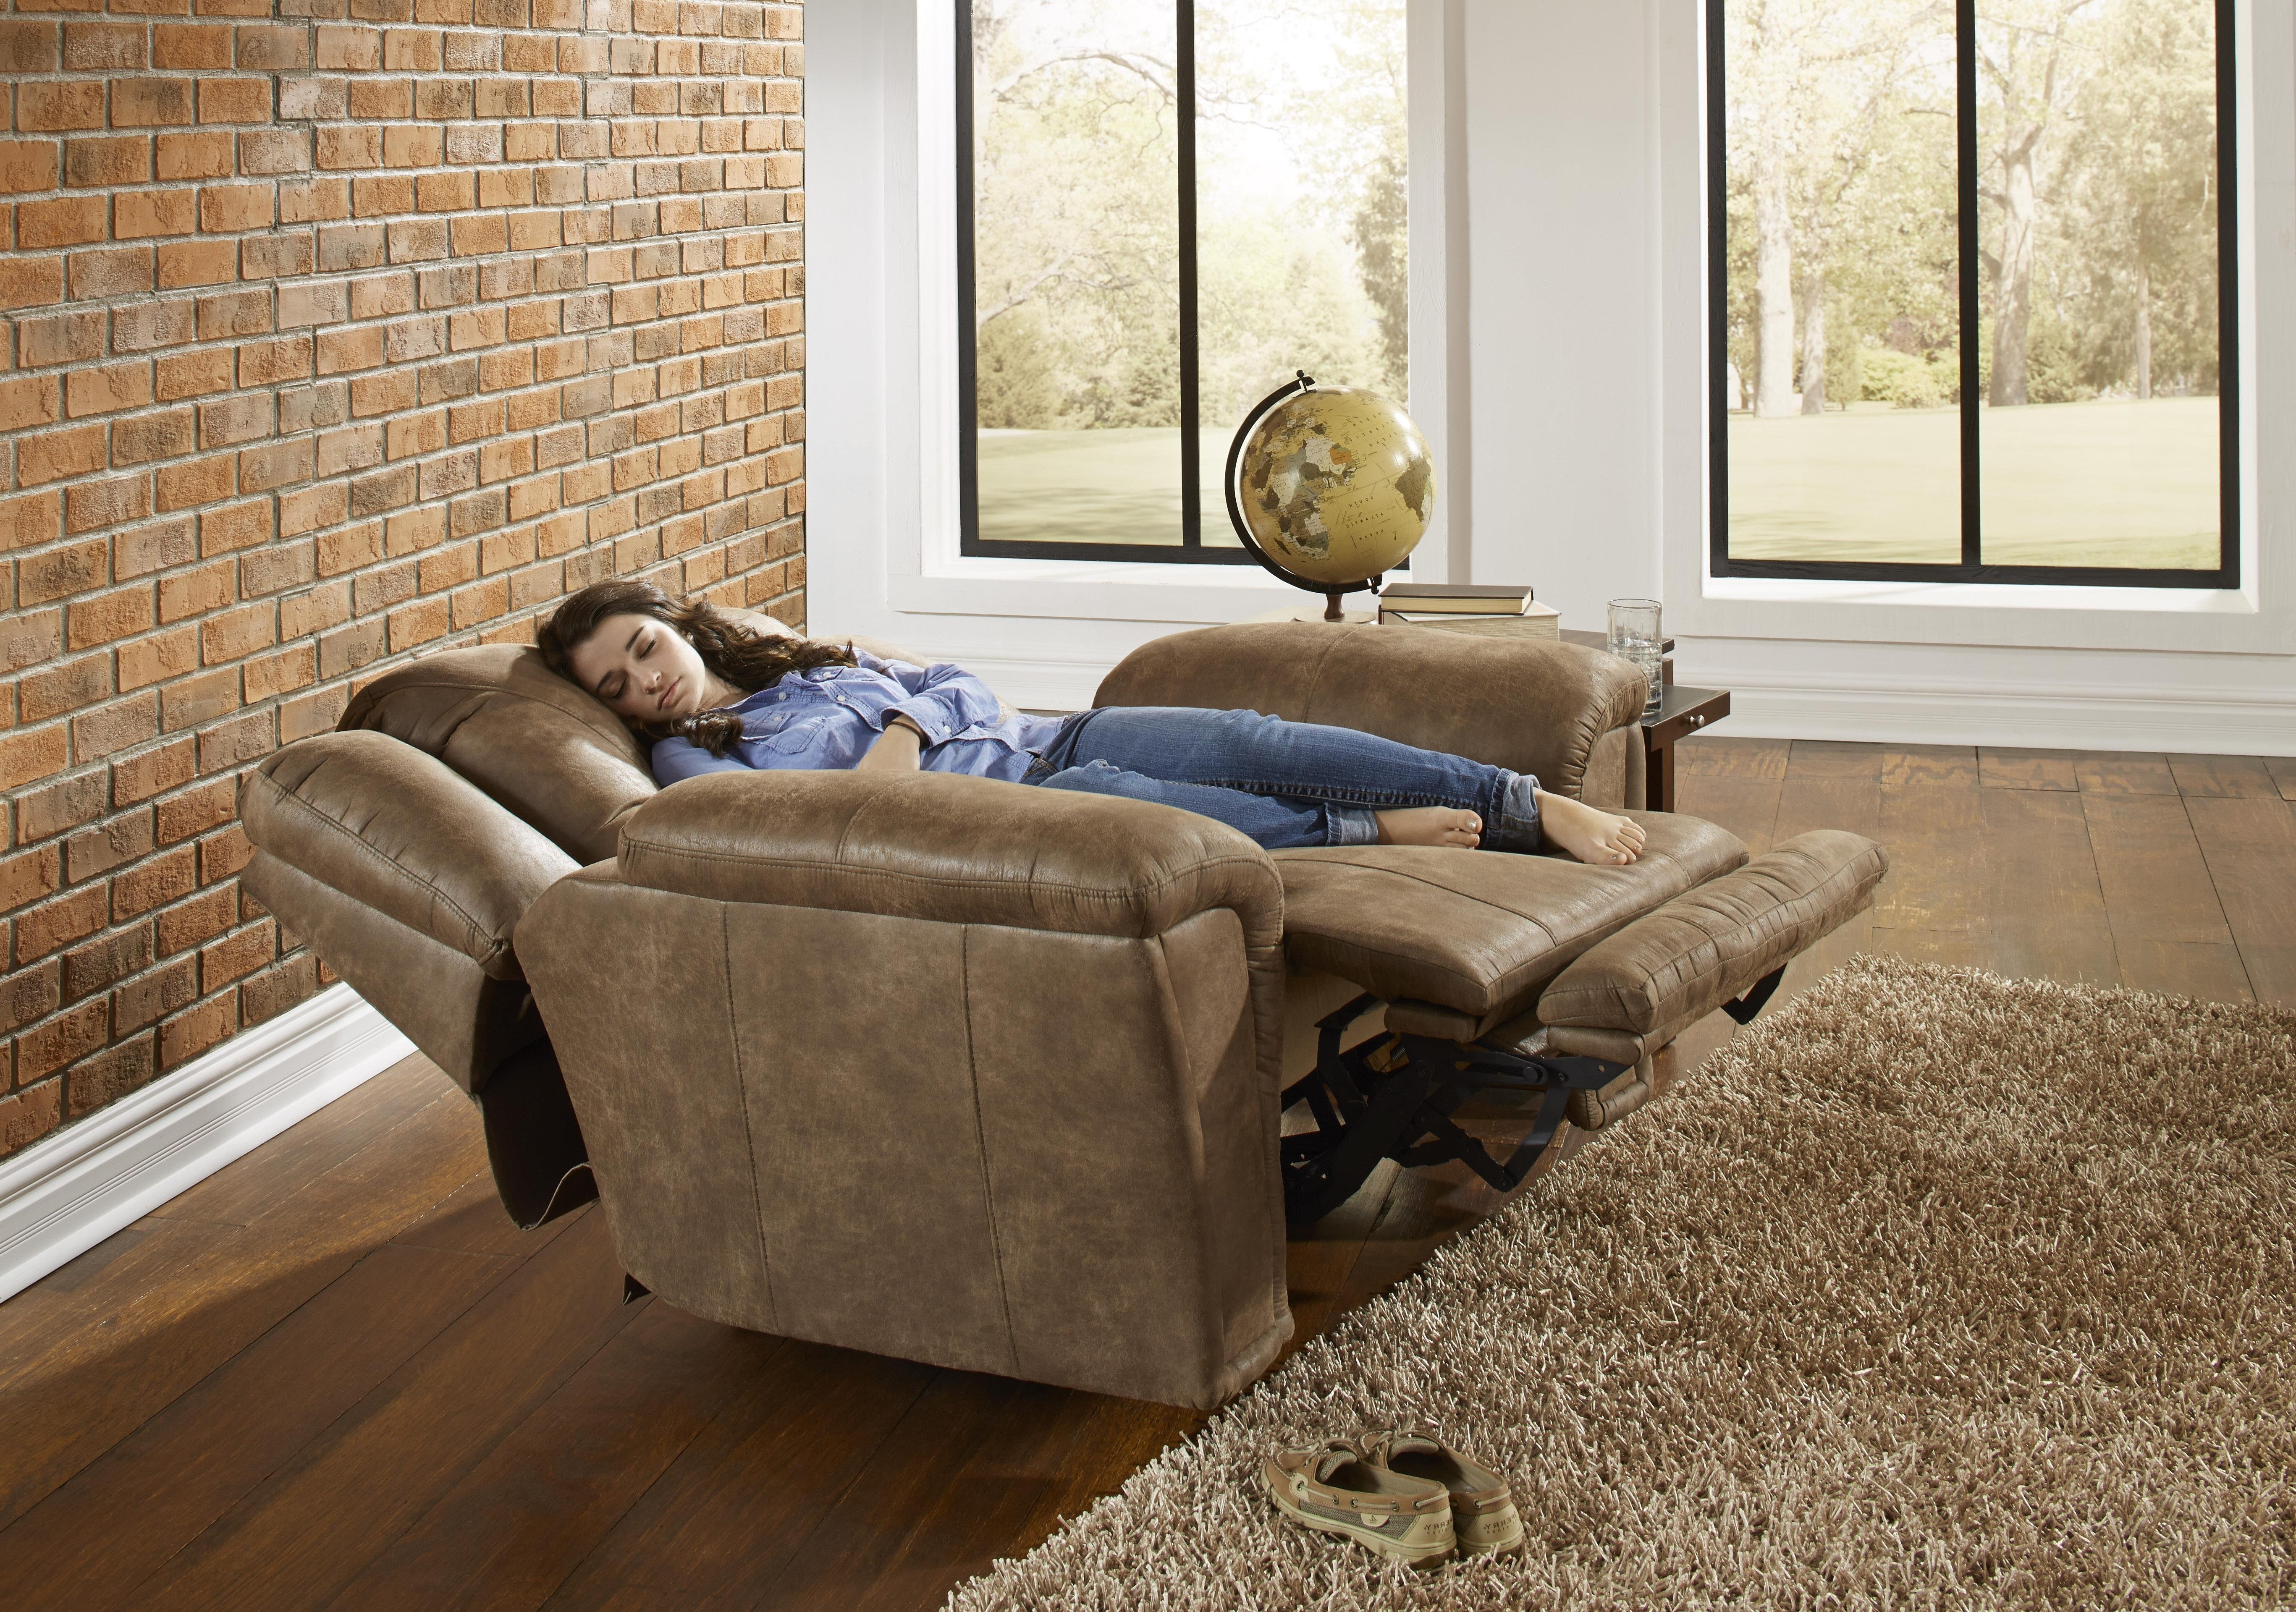 Widely Used Catnapper Jackpot Reclining Chaises Throughout Decorating: Luxury Catnapper Recliner For Equip And Beautify Your (View 15 of 15)